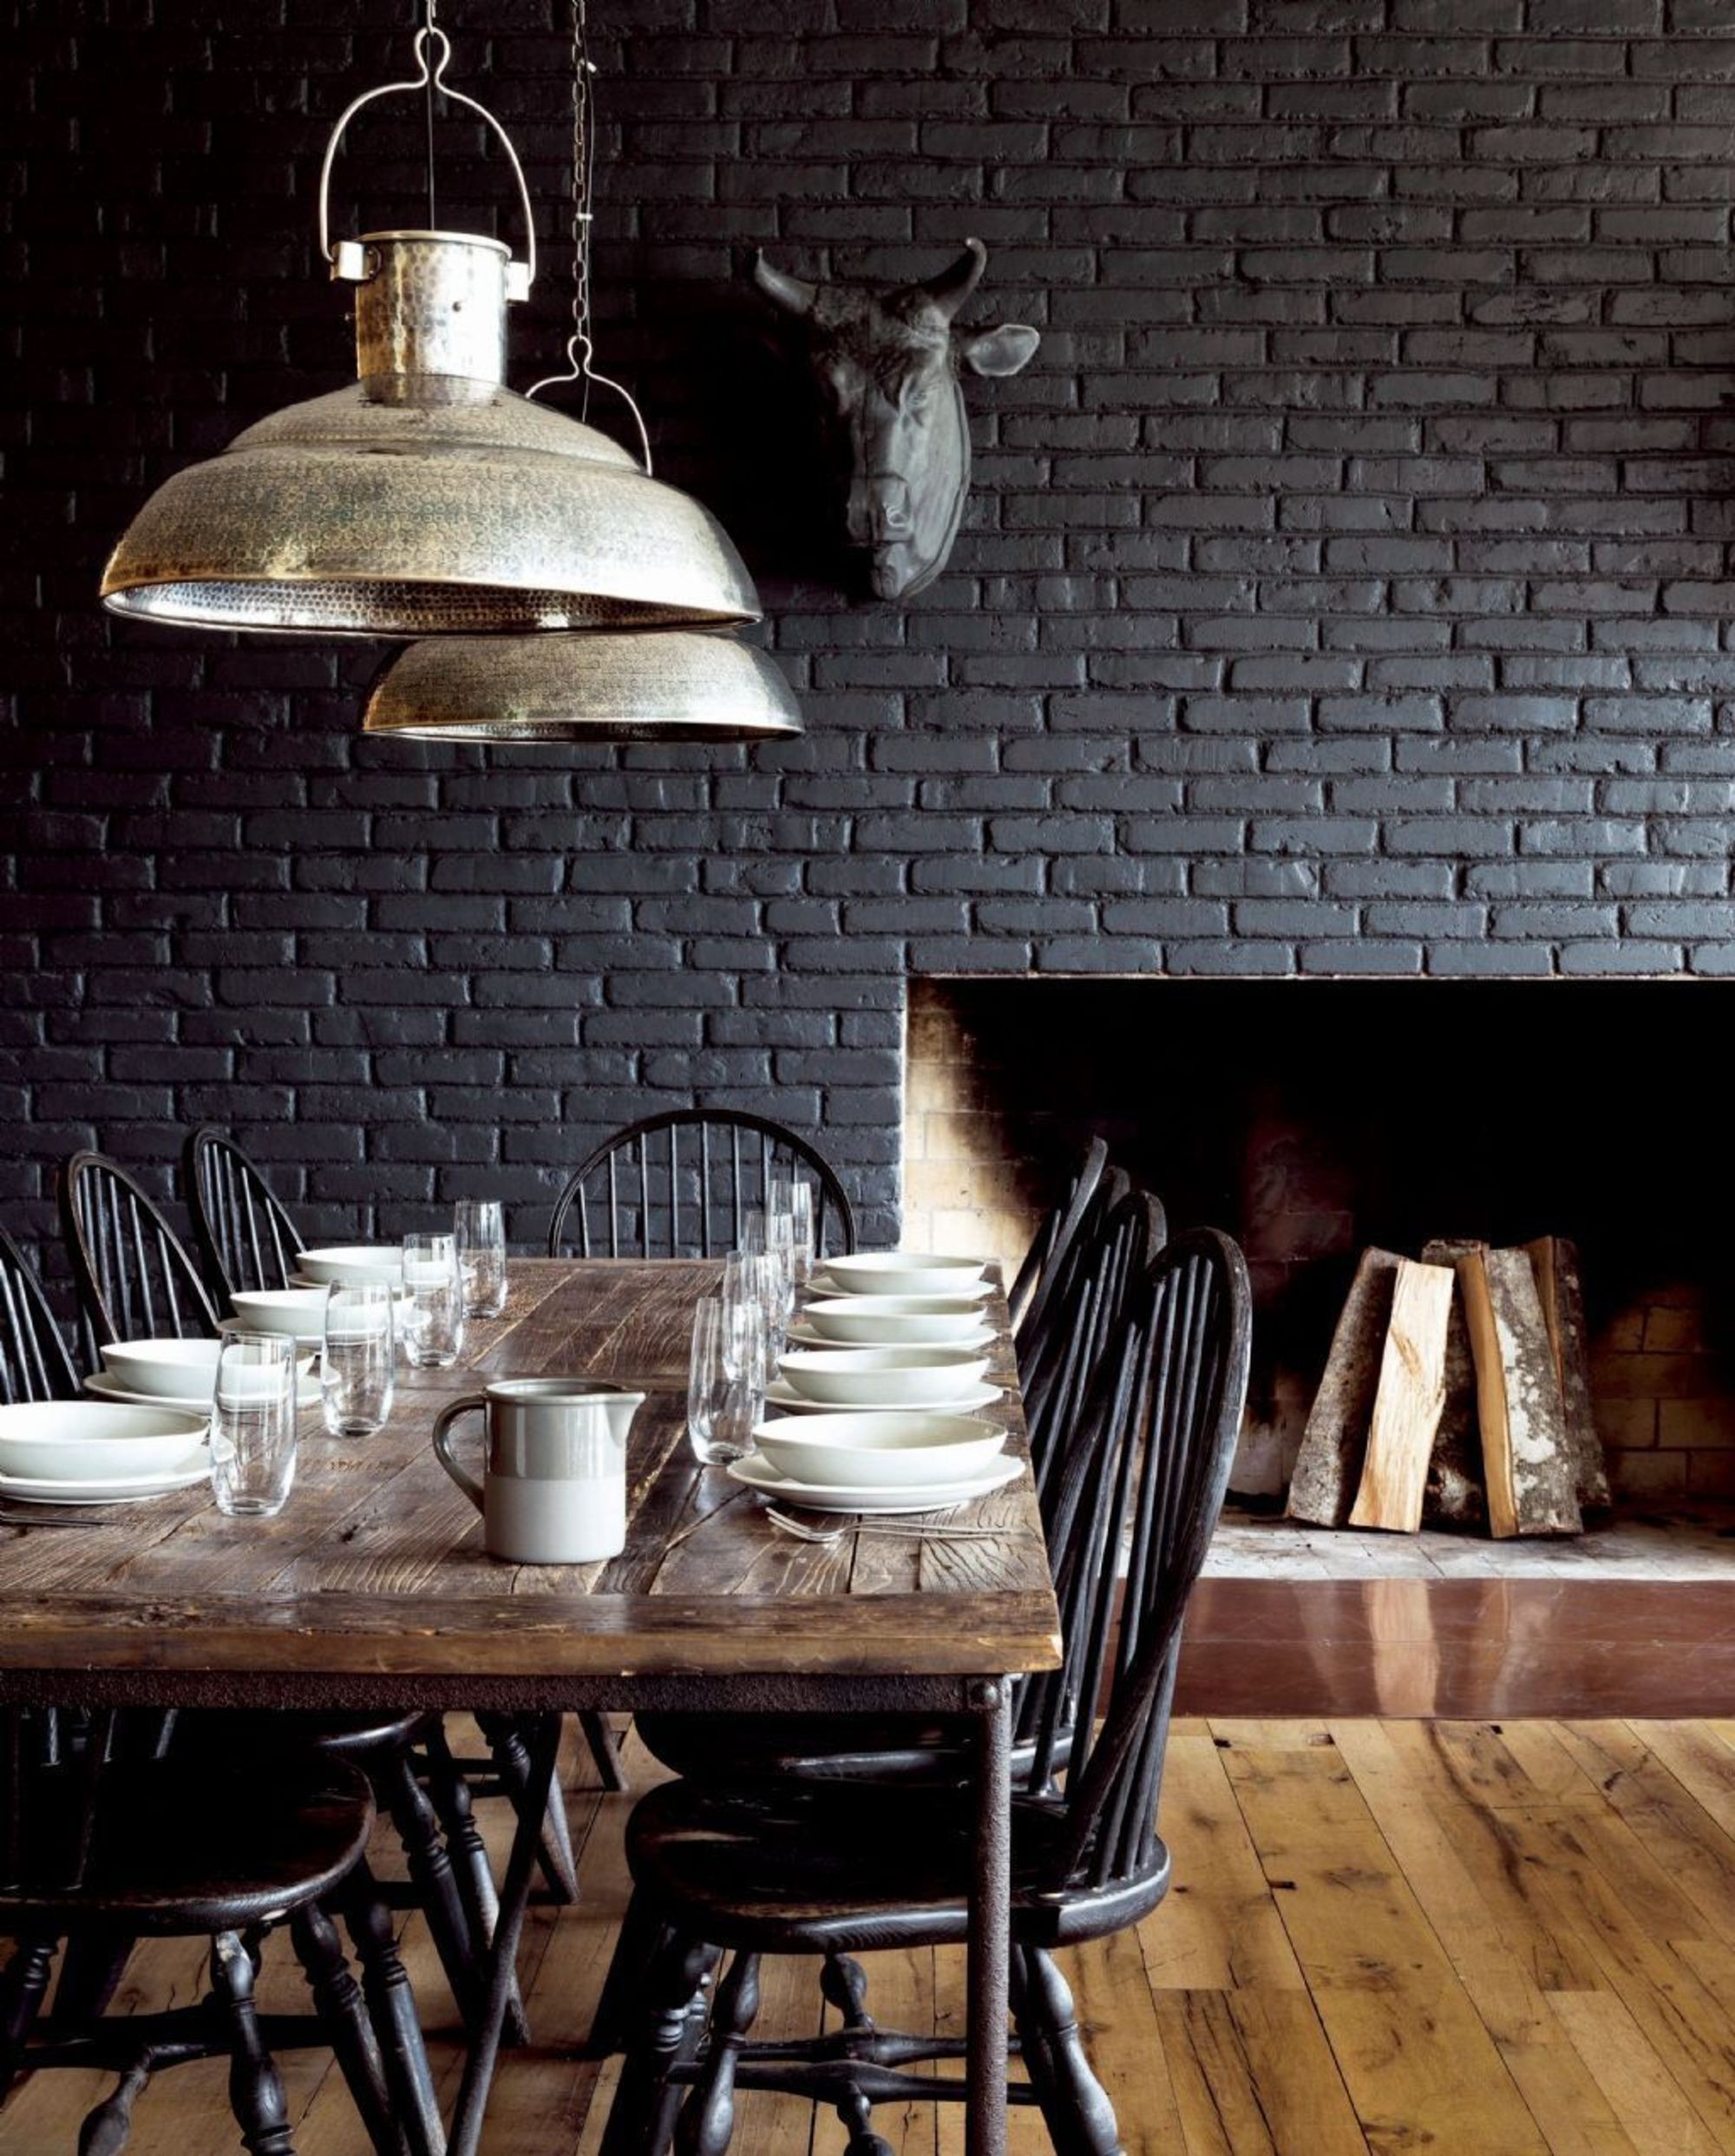 28 ideas for black wall interior styling interior brick walls 28 ideas for black wall interior styling amipublicfo Images